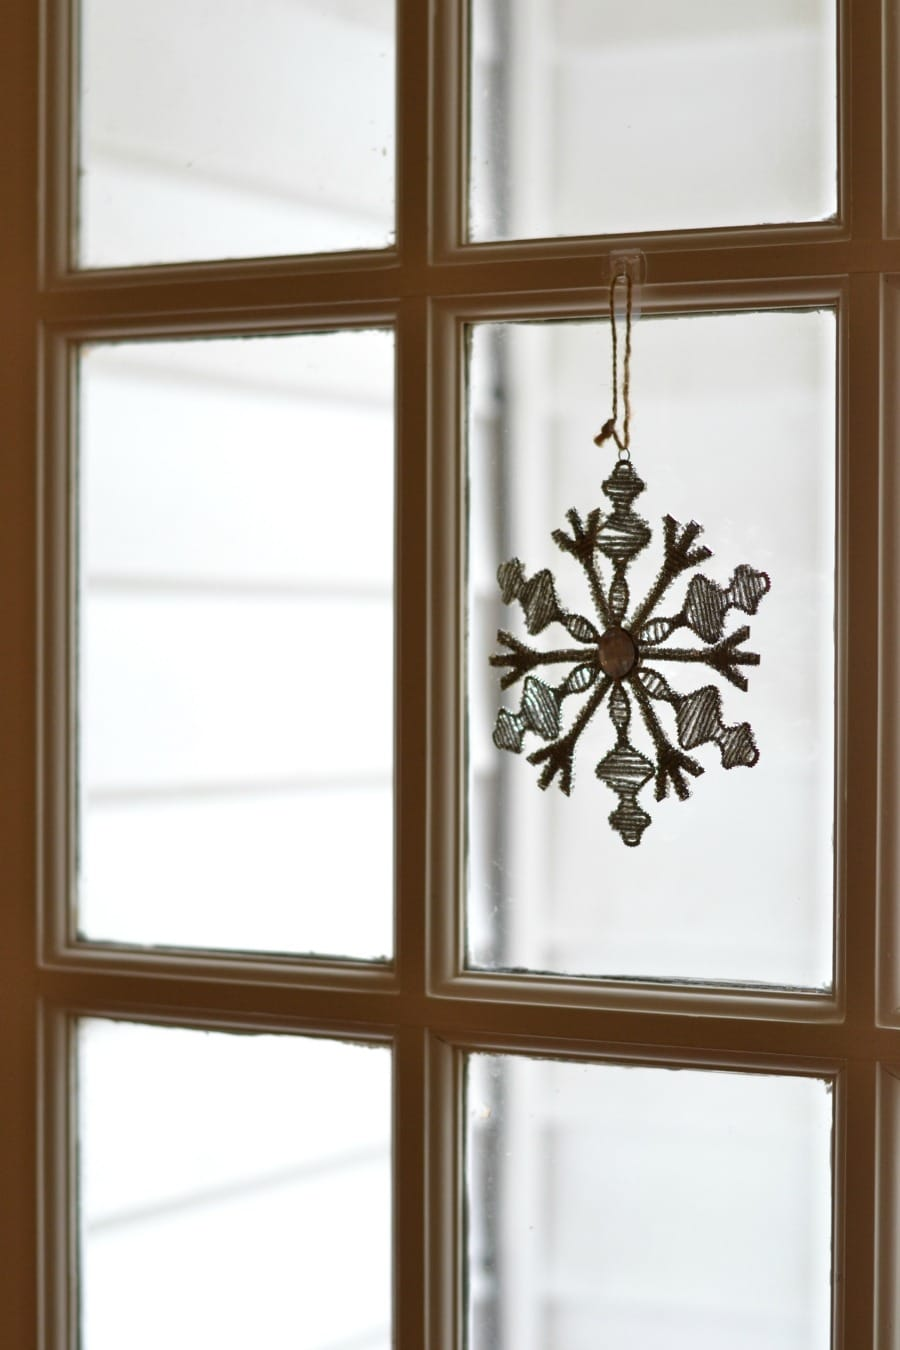 snowflake-ornament-on-window